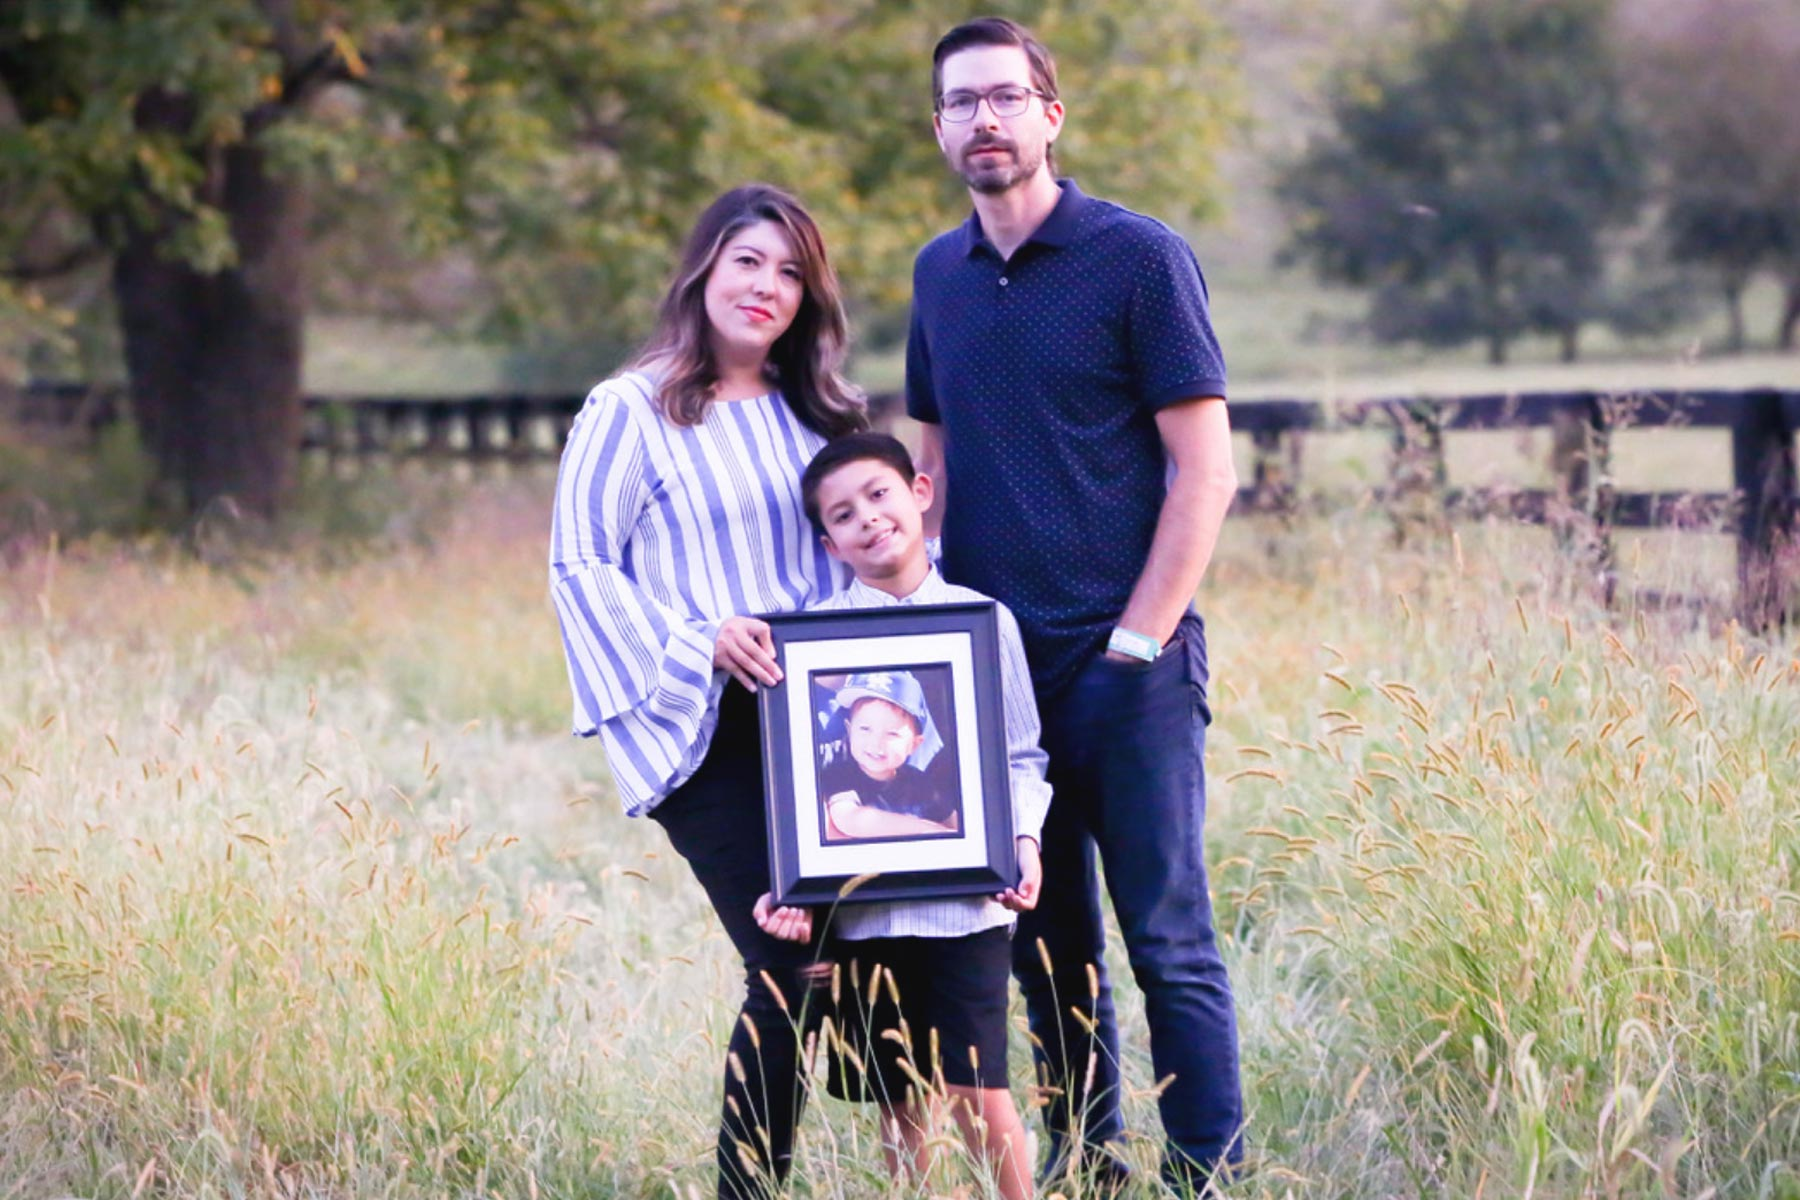 Liz, Benjamin, and Maximo stand together in a field for a family portrait. Maximo holds a large, framed portrait of Marco.